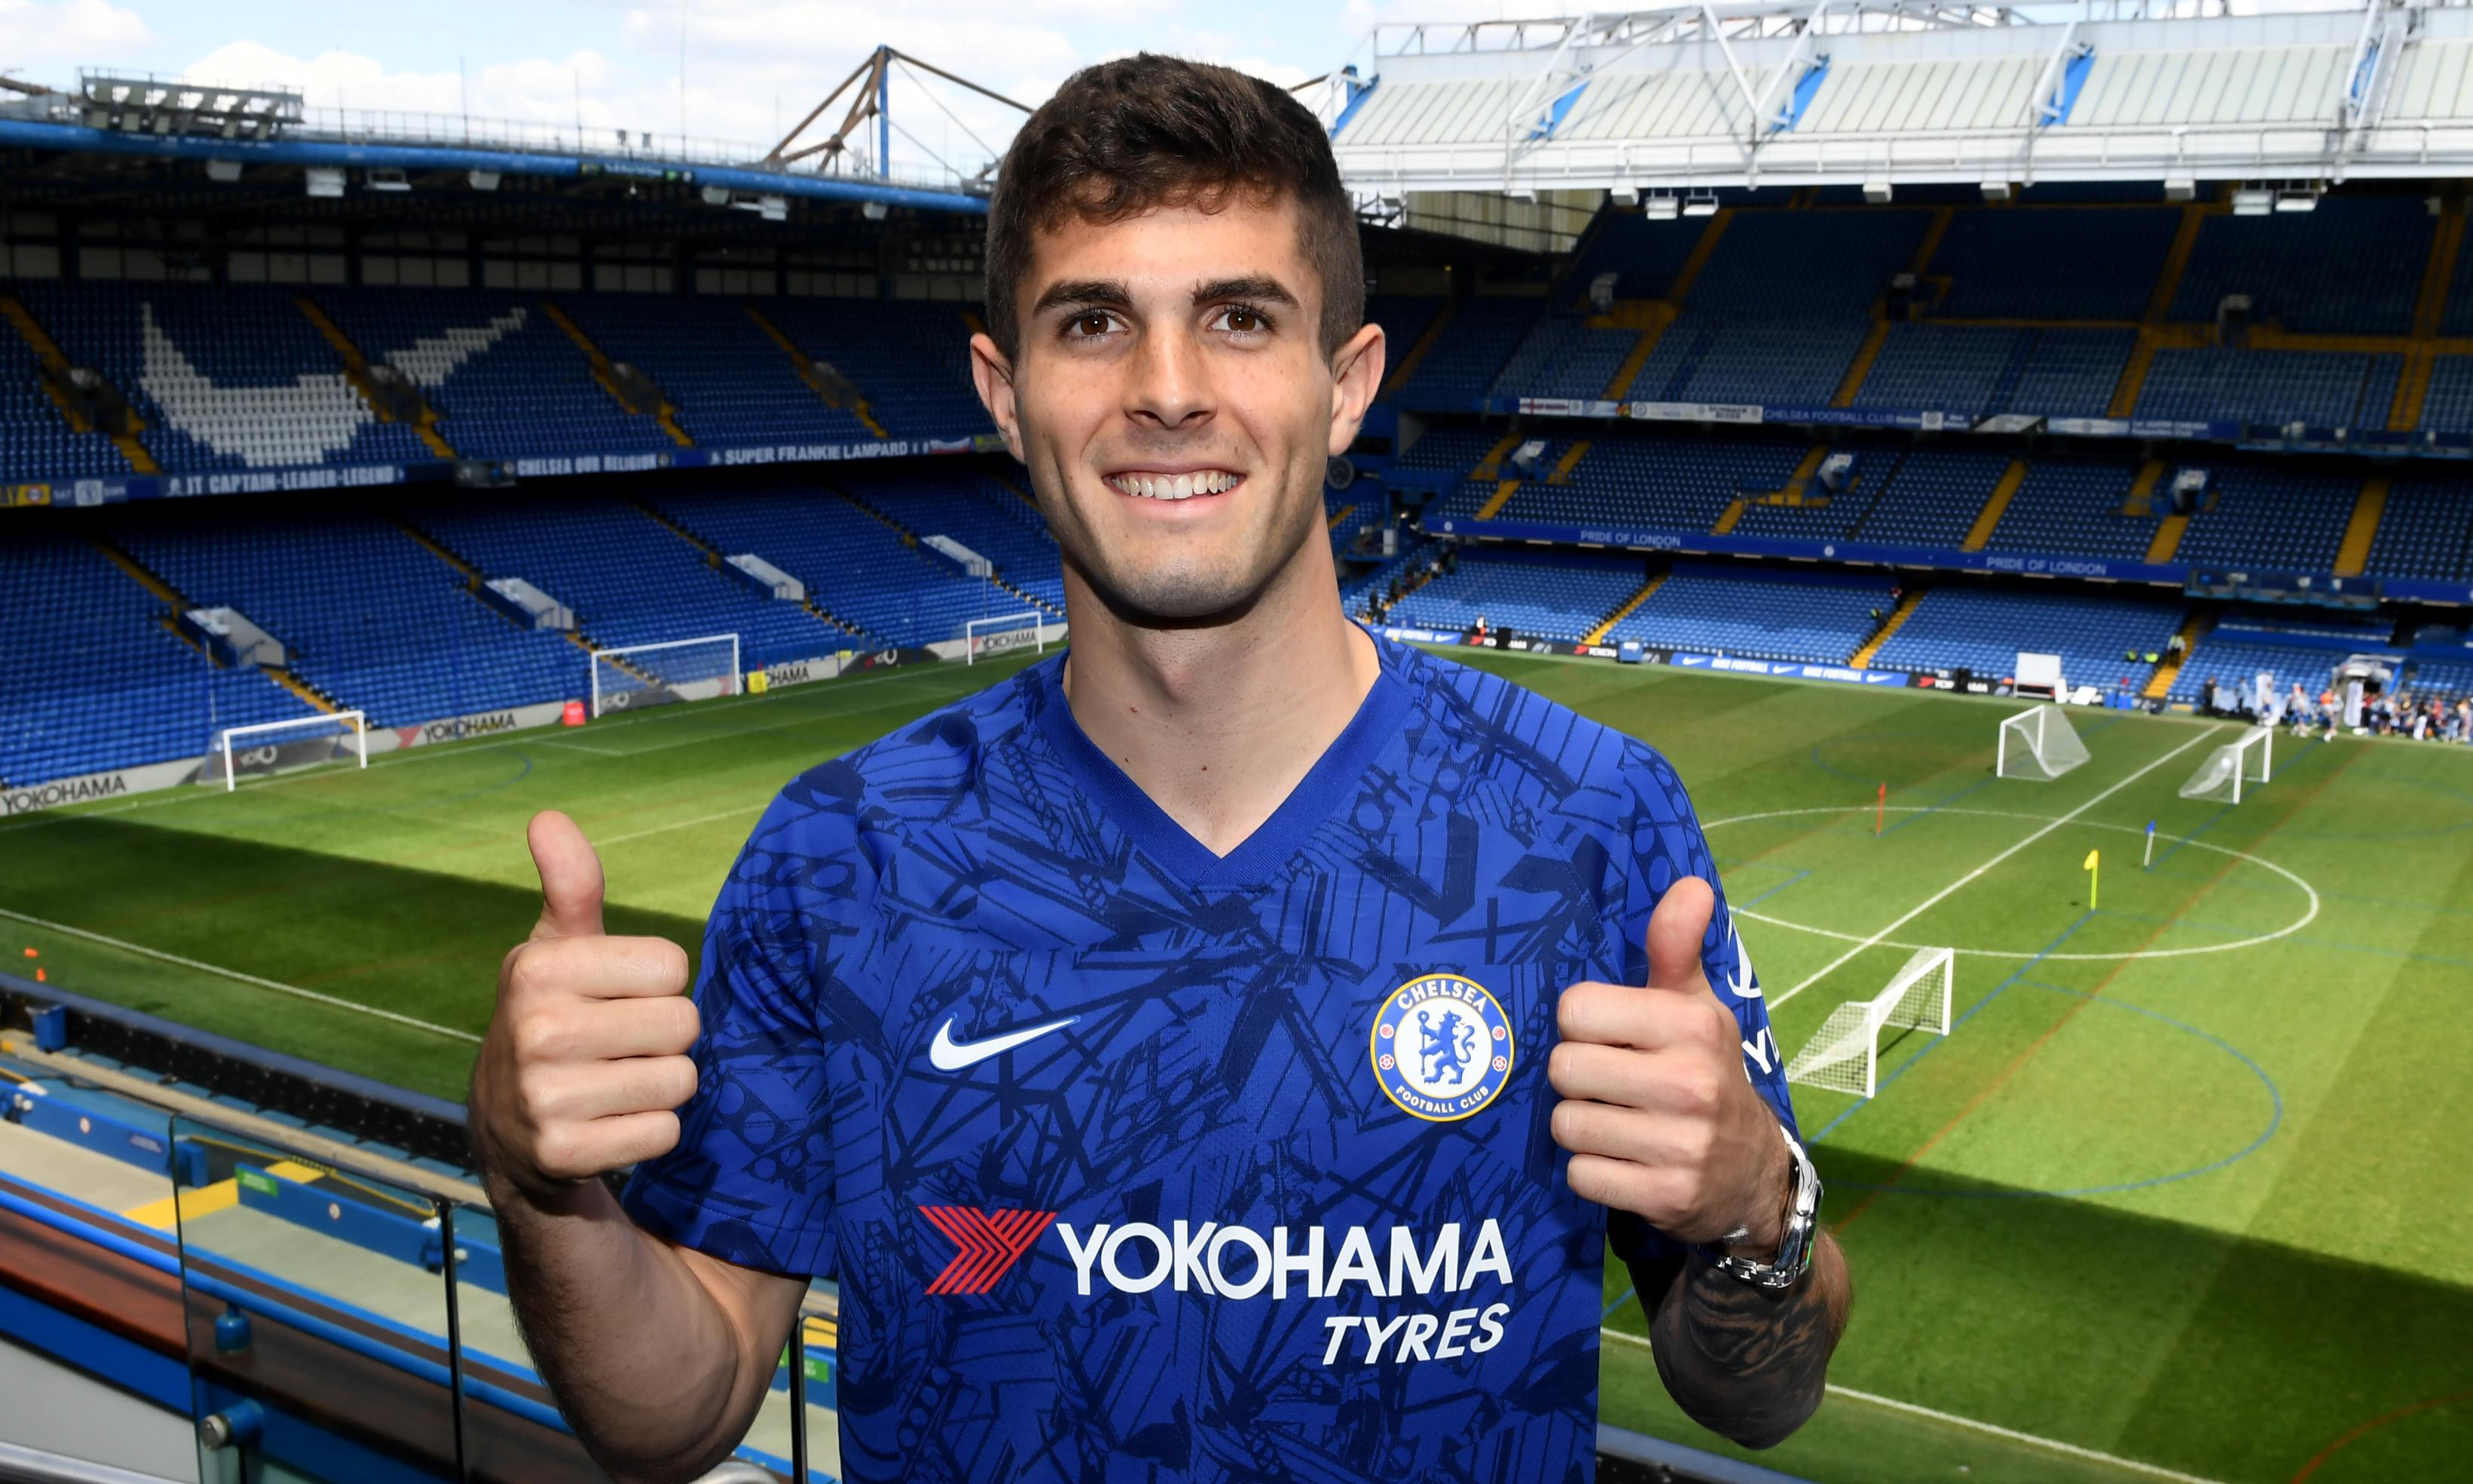 Christian Pulisic: 'There's a champion mentality at Chelsea'